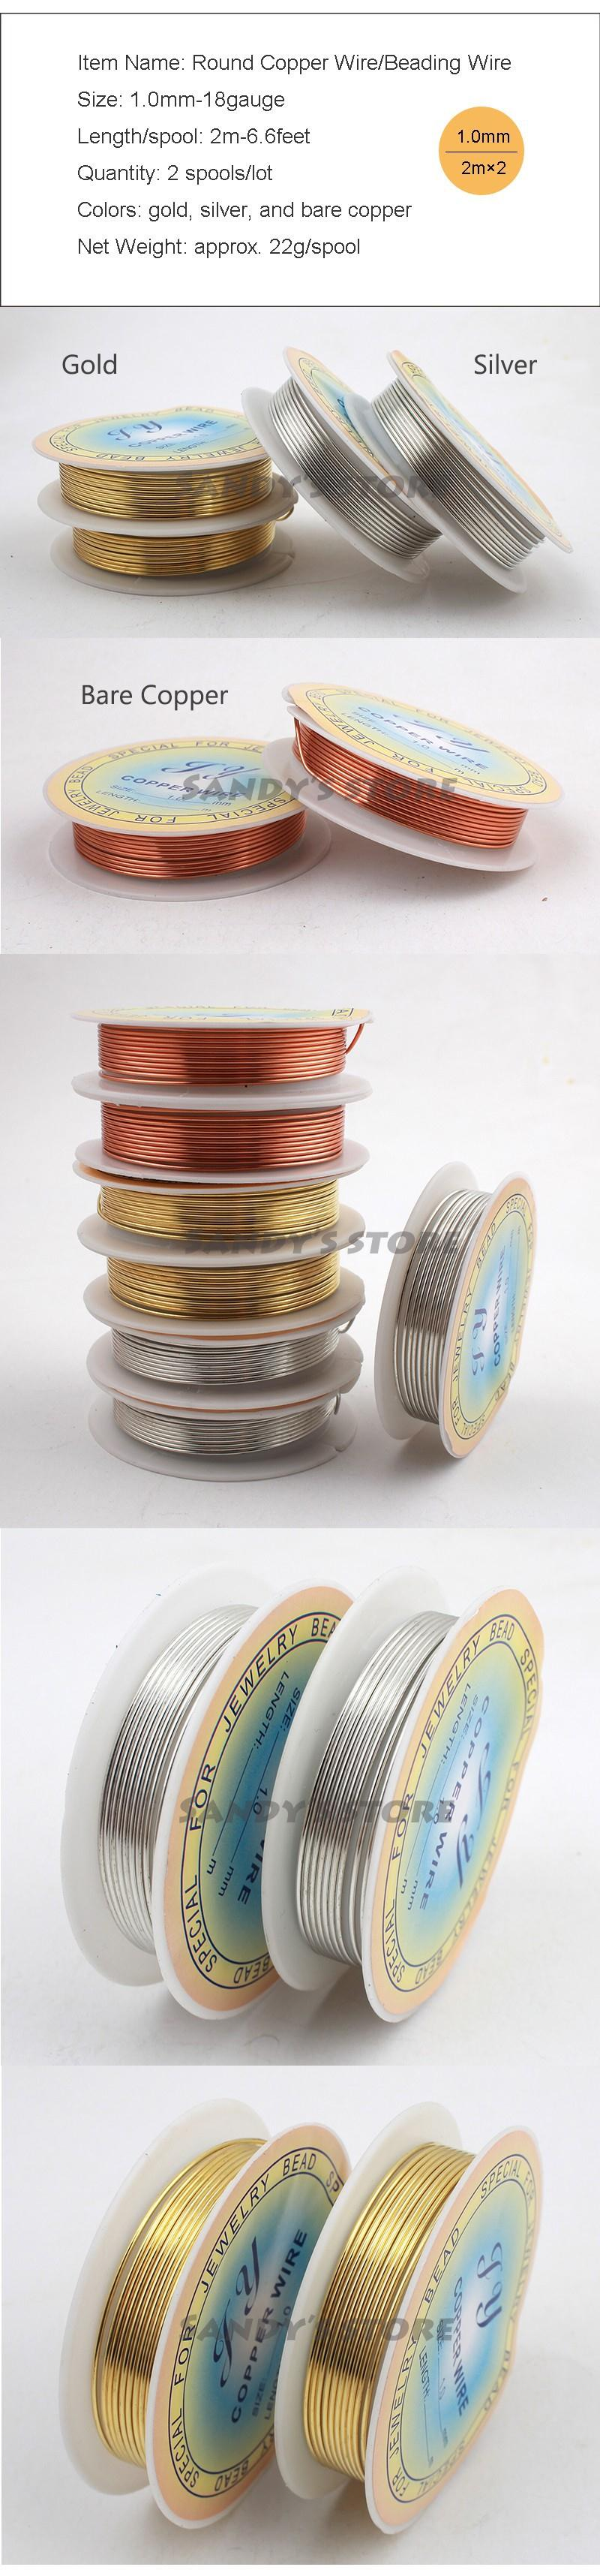 Online Cheap Wholesale 18 Ga Jewelry Copper Wire Solid Gold Silver ...